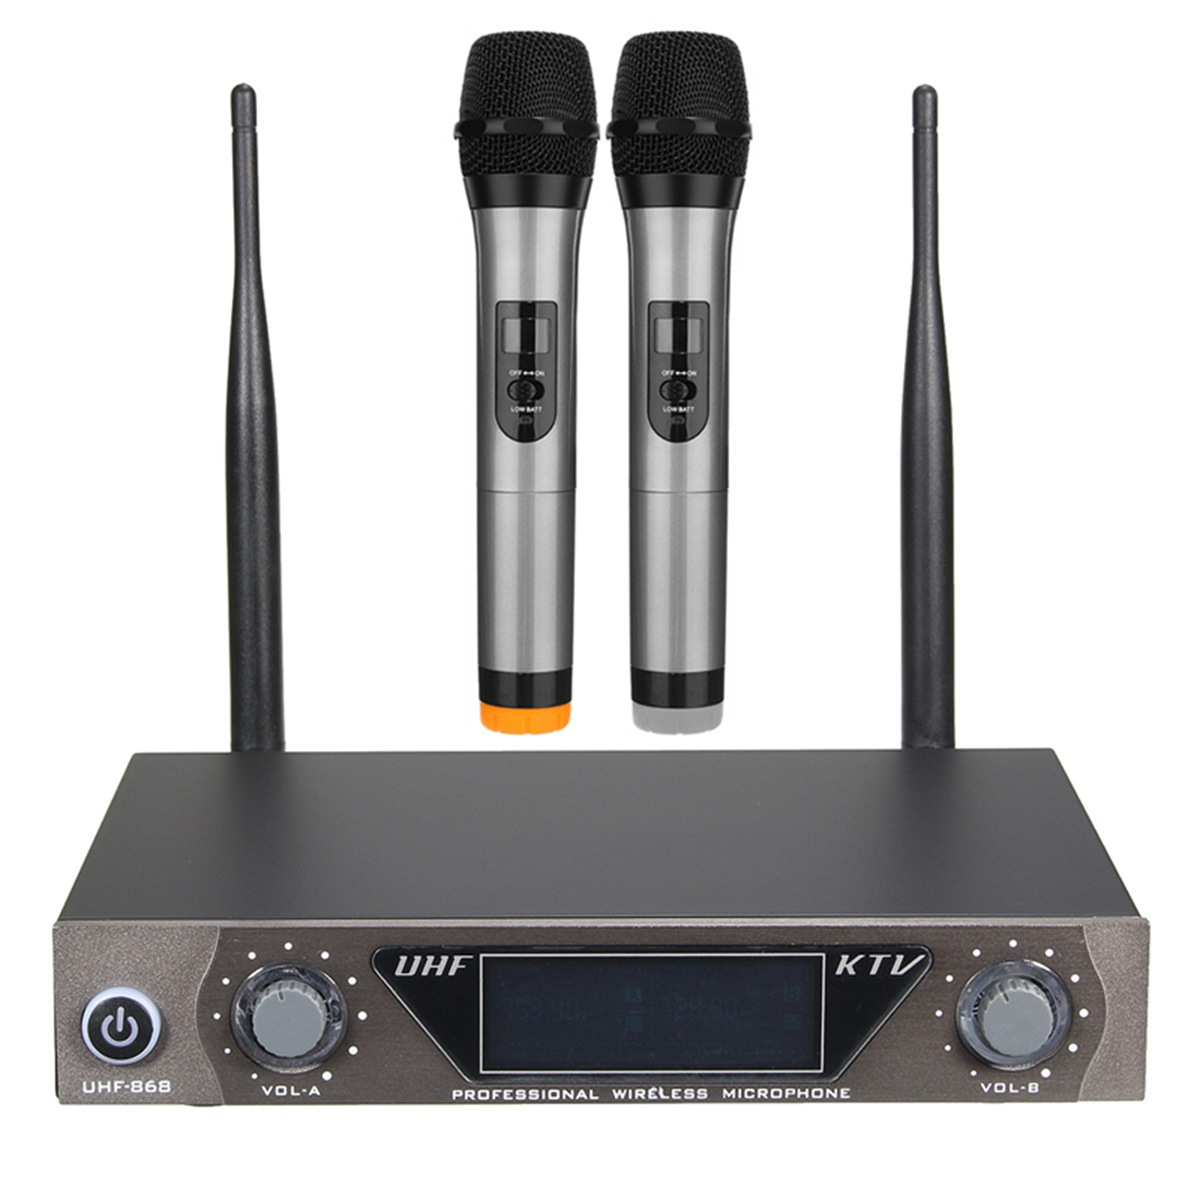 LEORY UHF Karaoke Wireless Microphone System With 2 Handheld Mic Dual Channel UHF Transmitter Microphone Systerm For Karaoke high end uhf 8x50 channel goose neck desk wireless conference microphones system for meeting room